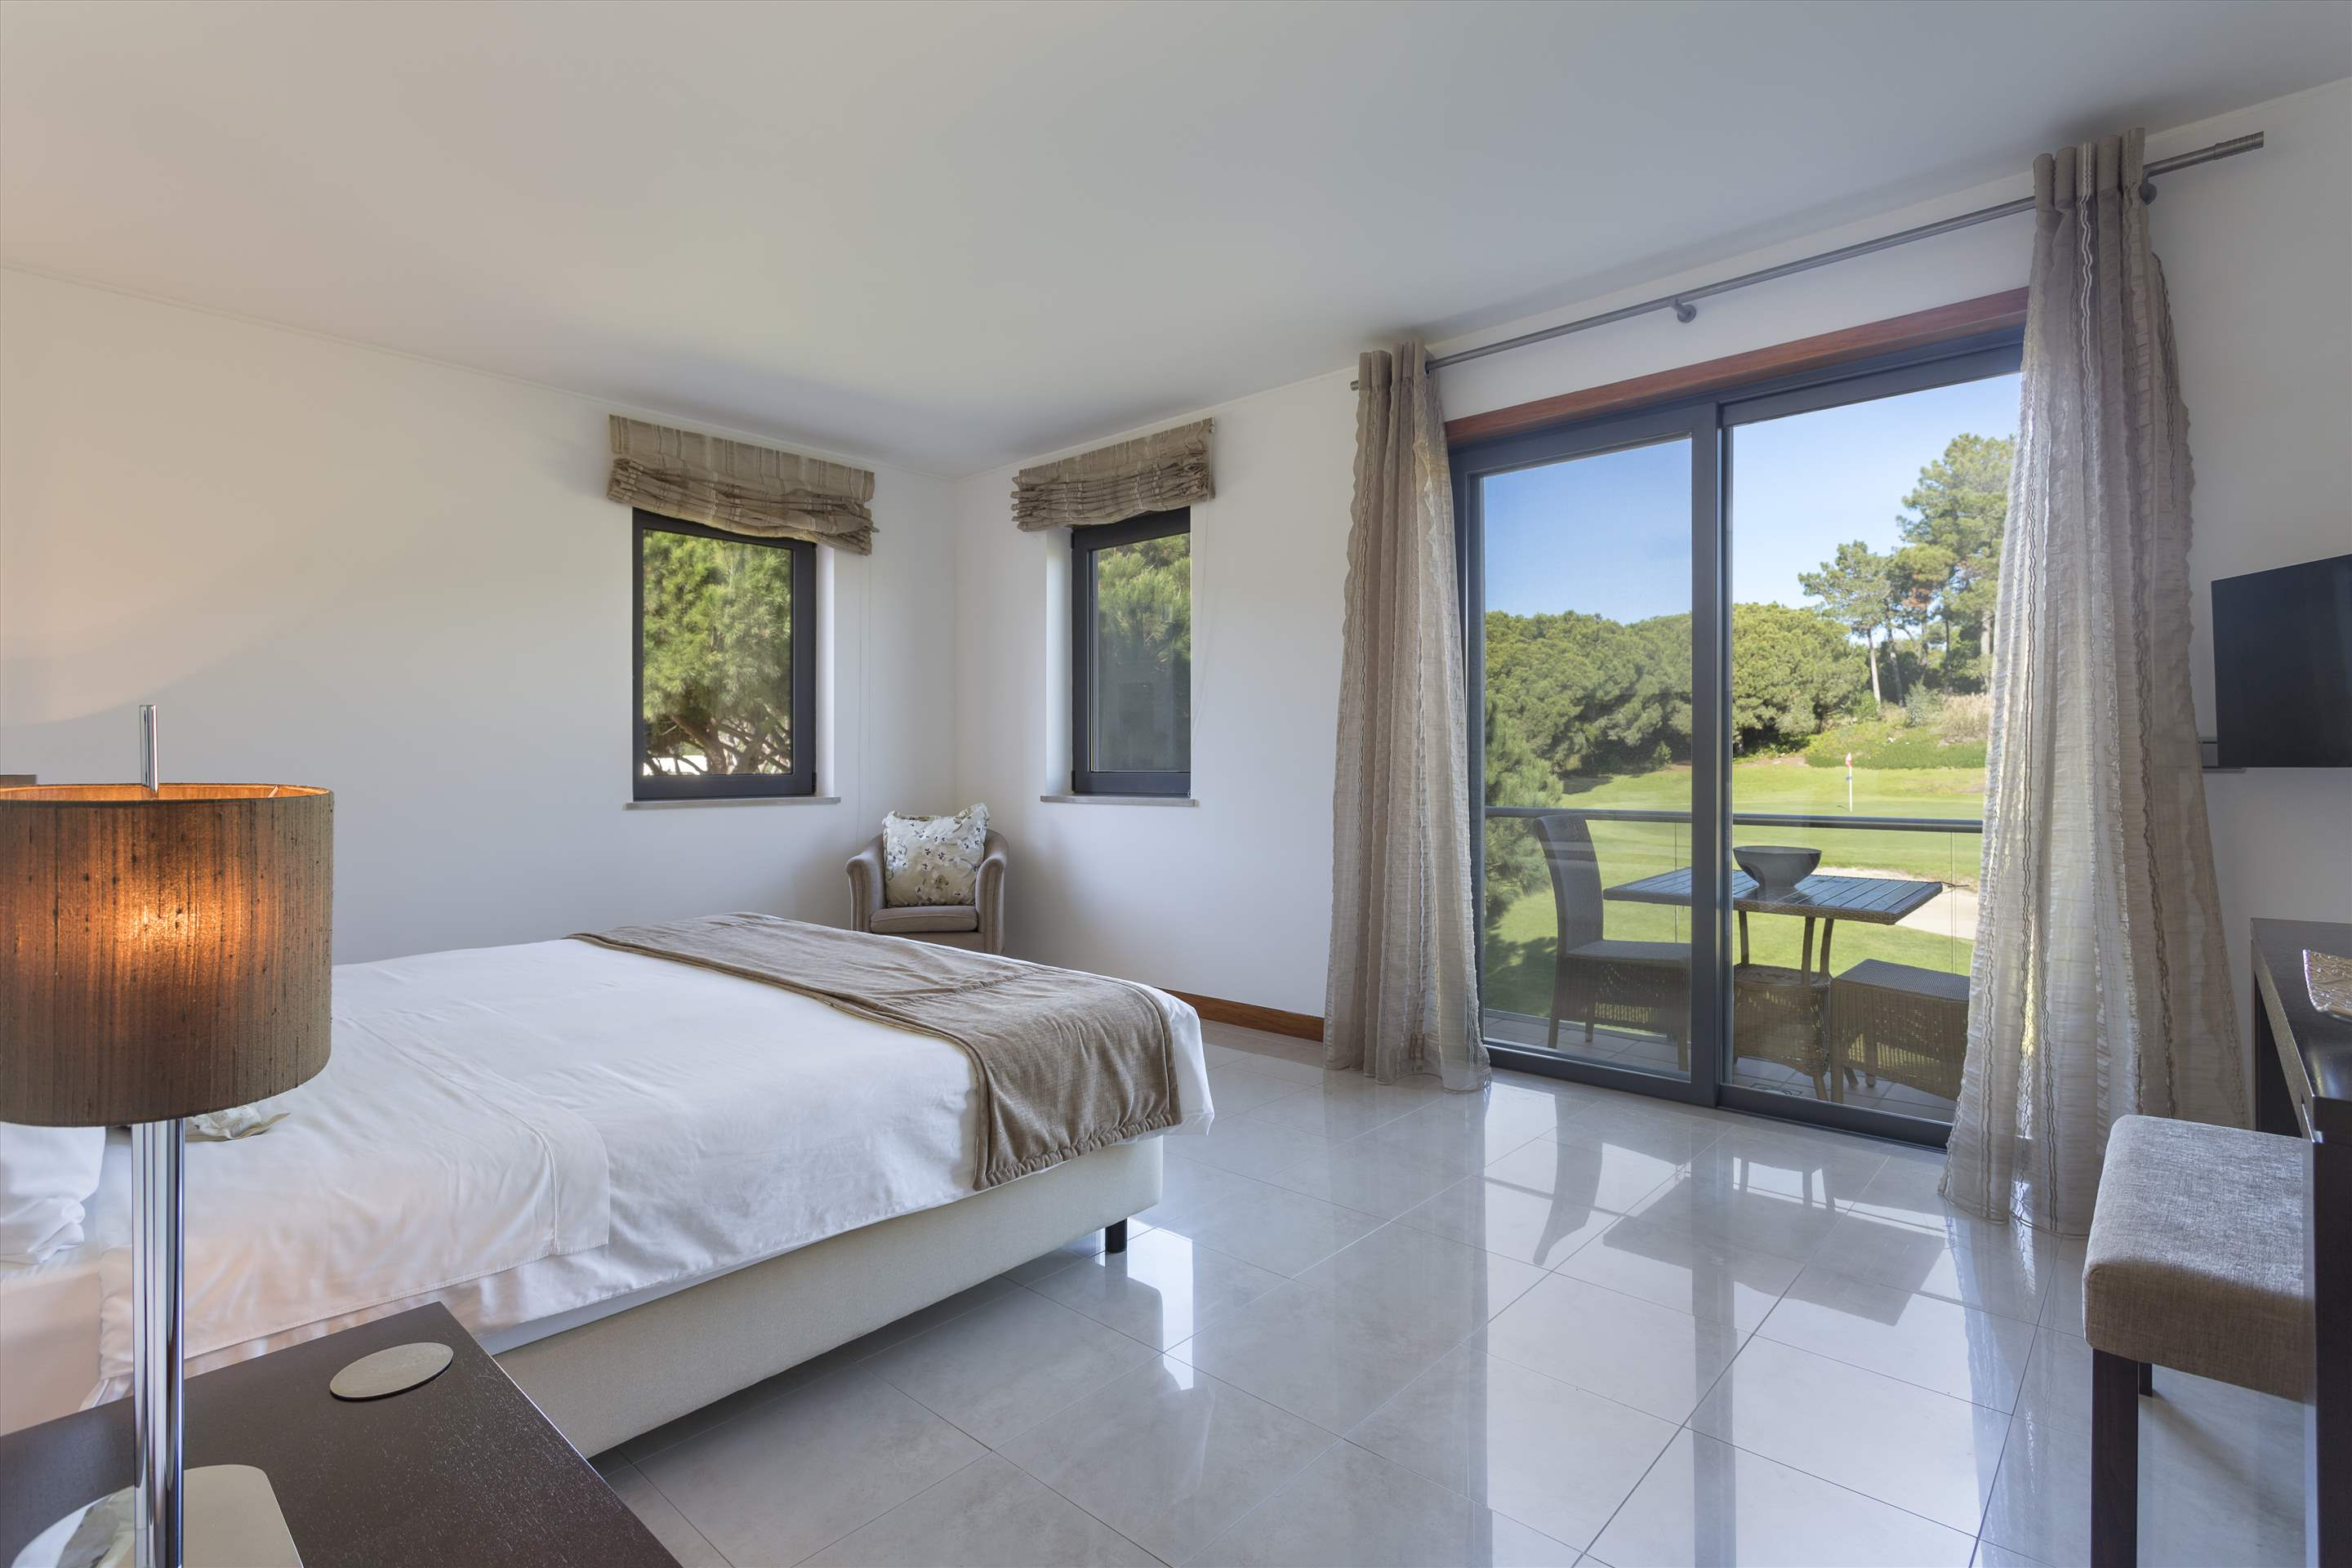 Apartment Alexandra, 2 bedroom apartment in Vale do Lobo, Algarve Photo #14